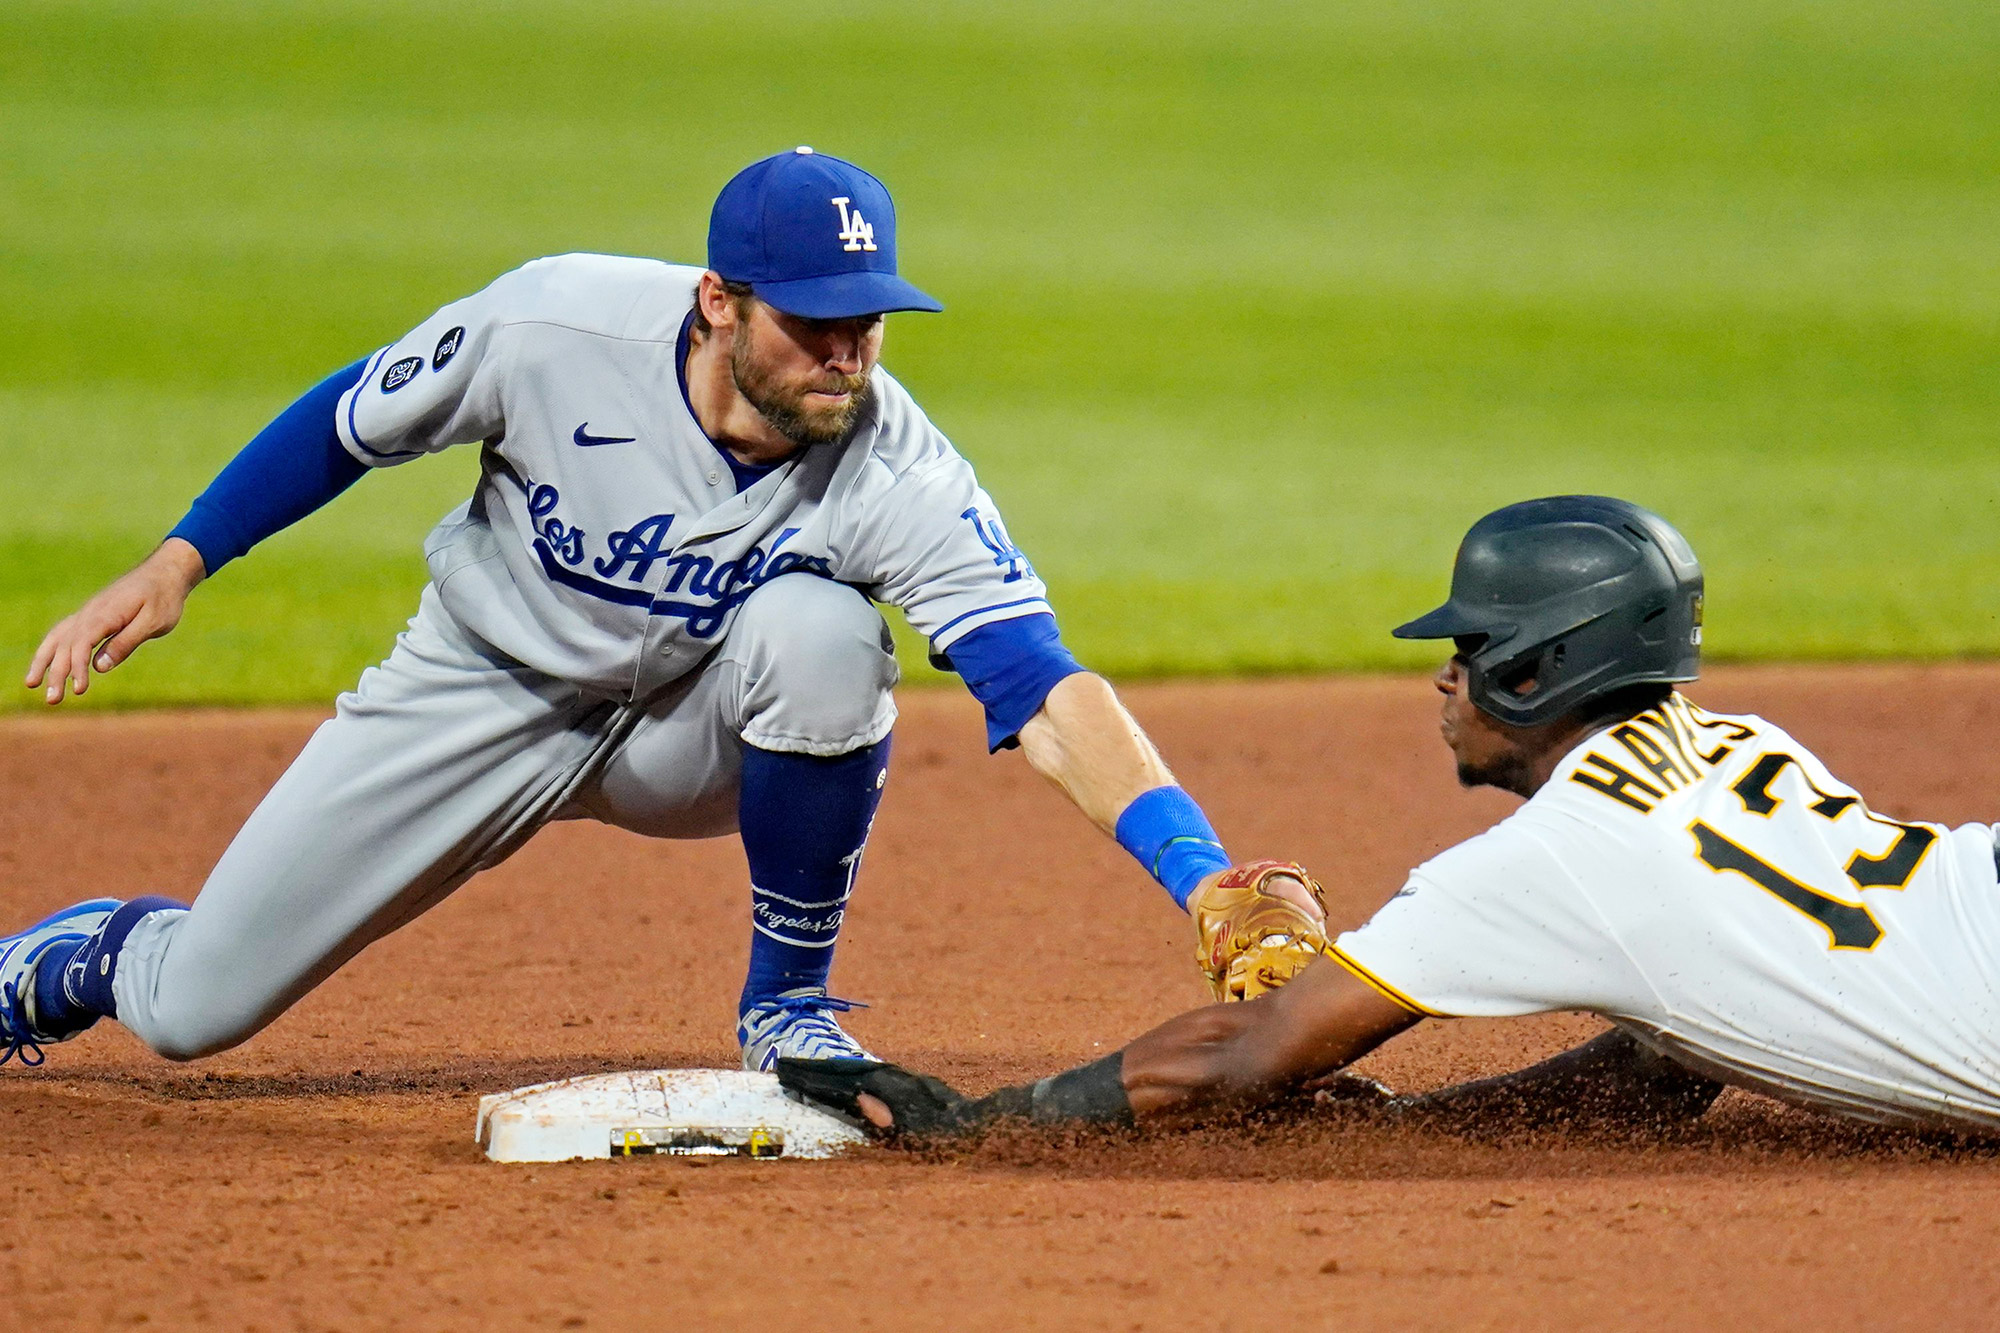 Los Angeles Dodgers second baseman Chris Taylor, left, puts the tag on Pittsburgh Pirates' Ke'Bryan Hayes (13) during the third inning of a baseball game in Pittsburgh, . Hayes slid past the bag, and was tagged out to end the inning Dodgers Pirates Baseball, Pittsburgh, United States - 08 Jun 2021